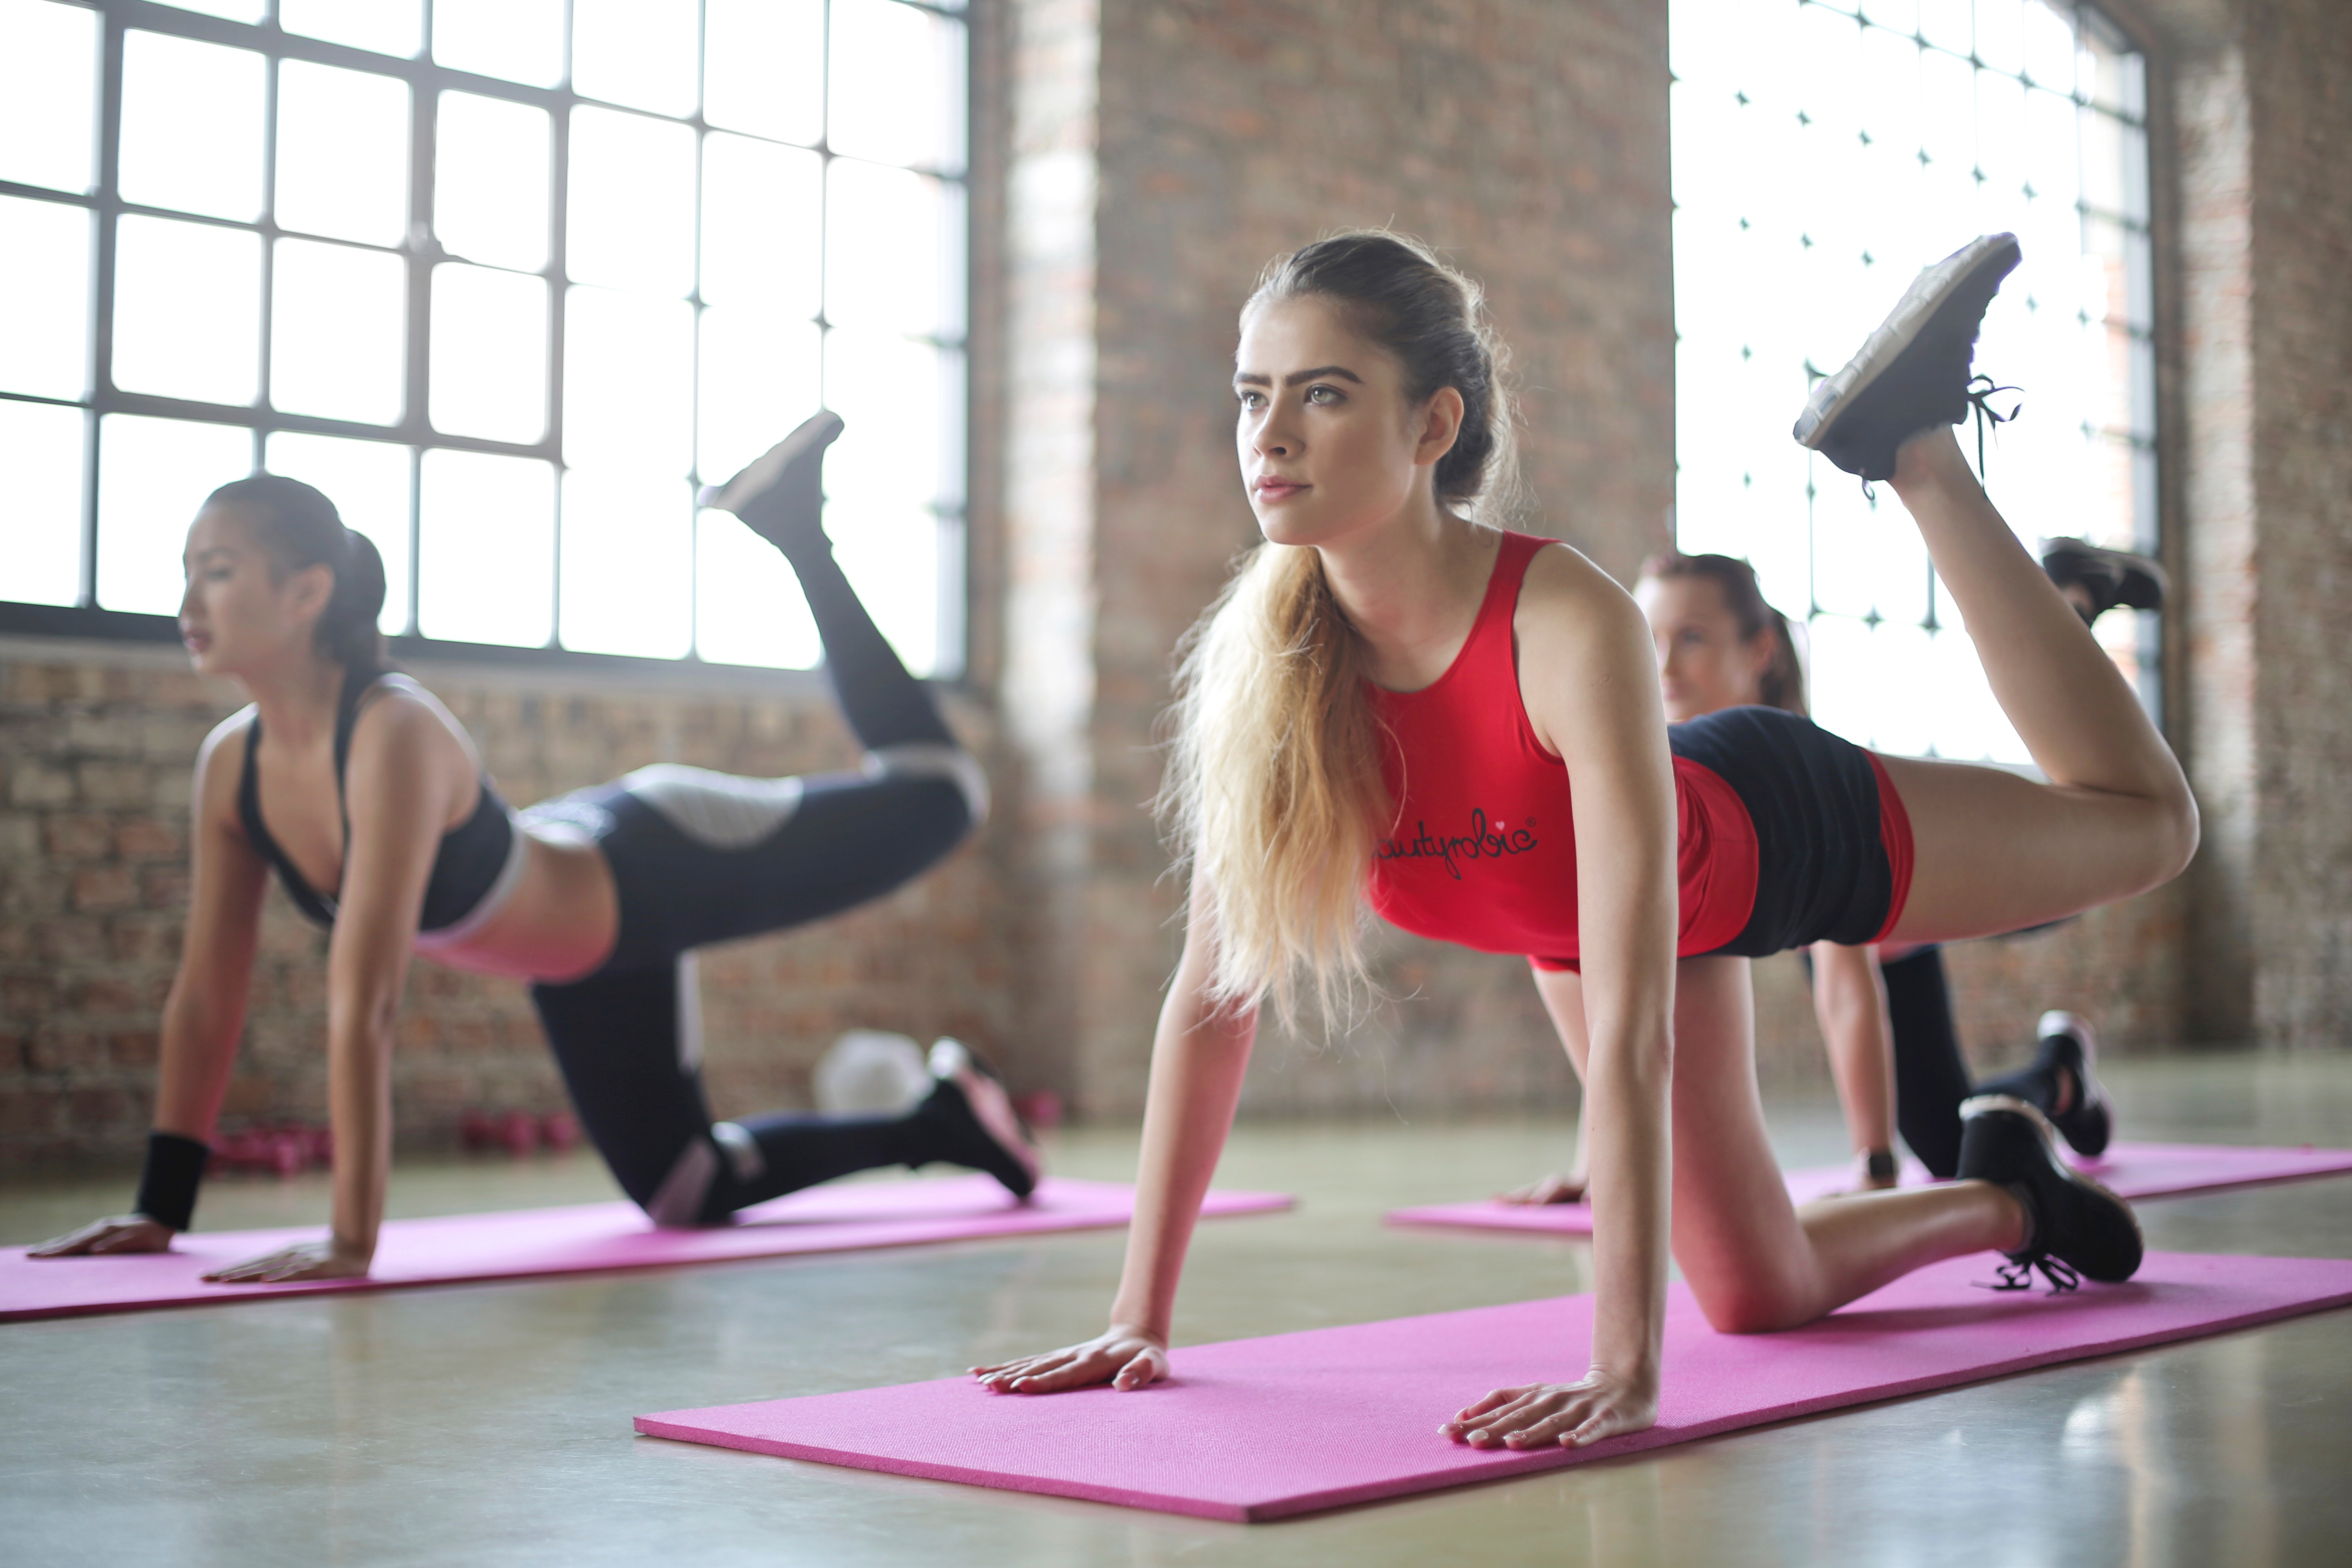 Group of Woman Doing Yoga, Active, Girls, Workout, Women, HQ Photo